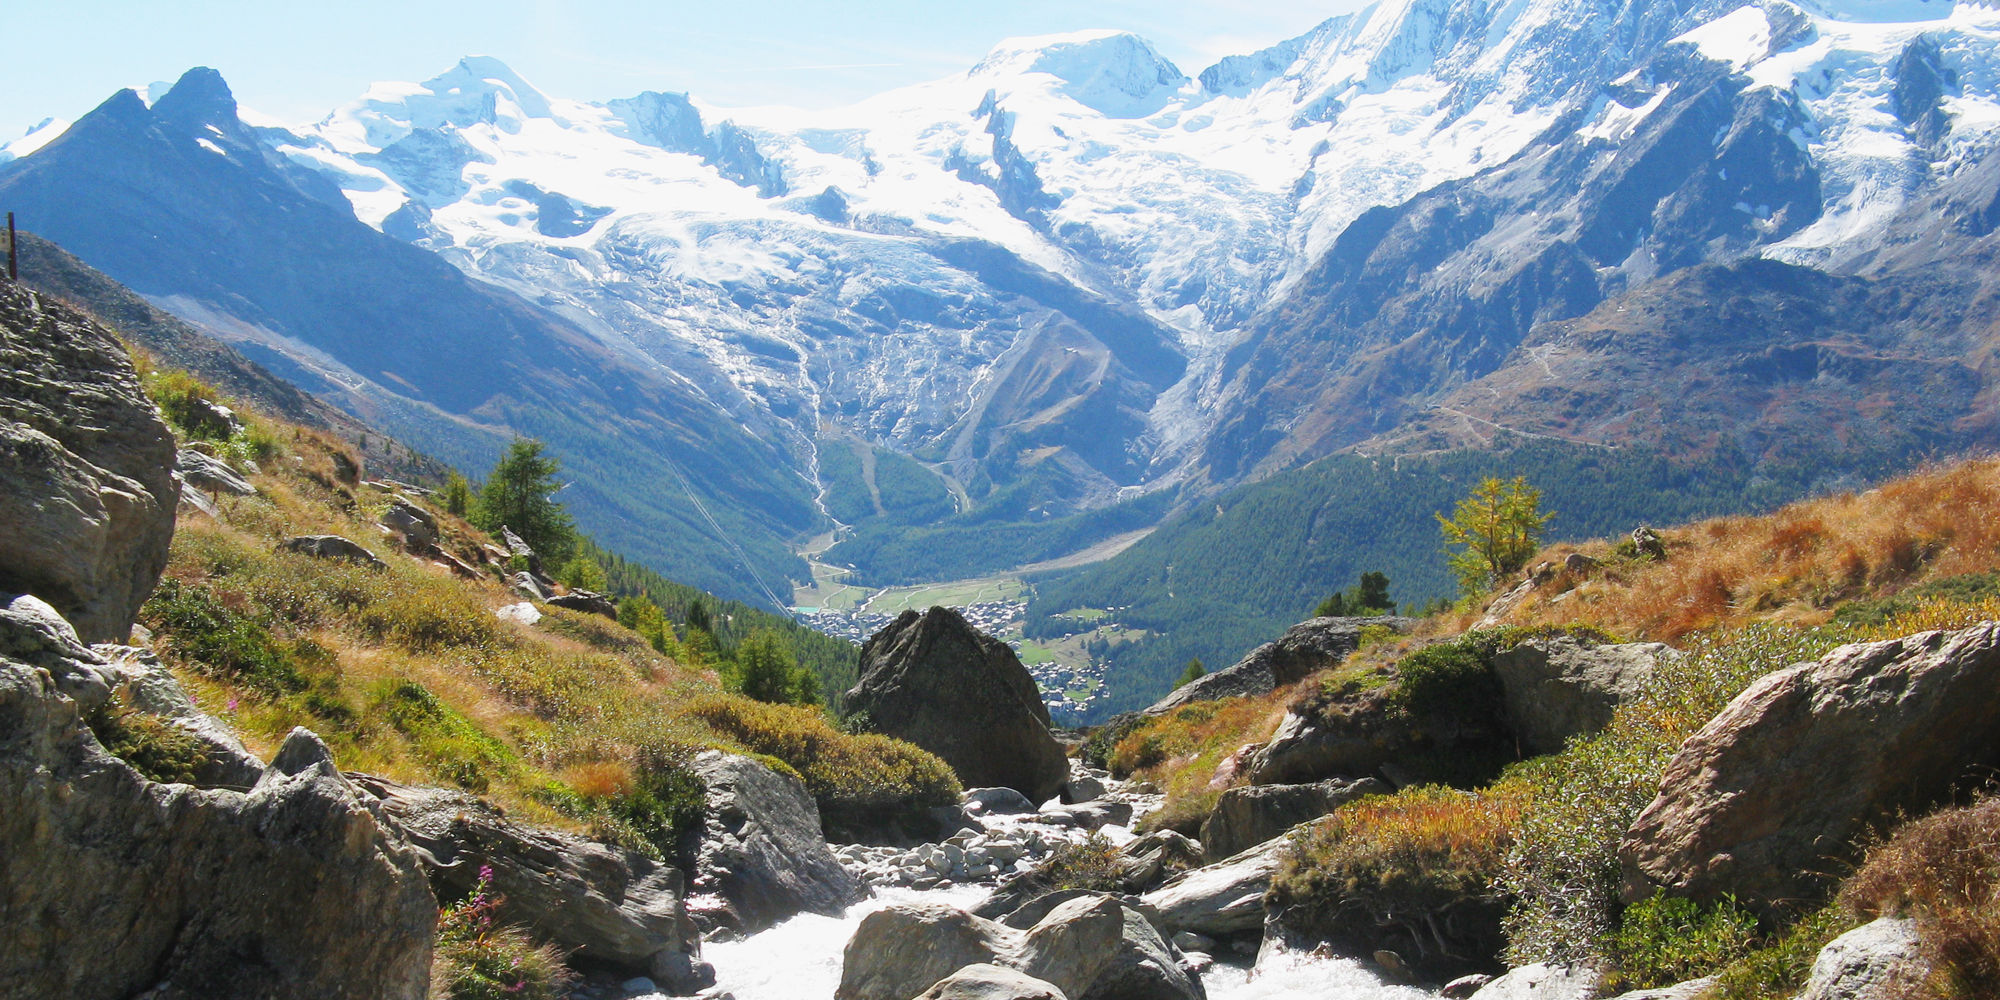 reuzboden Wellness and Pleasure Trail in the Free Republic of Holidays Saas-Fee